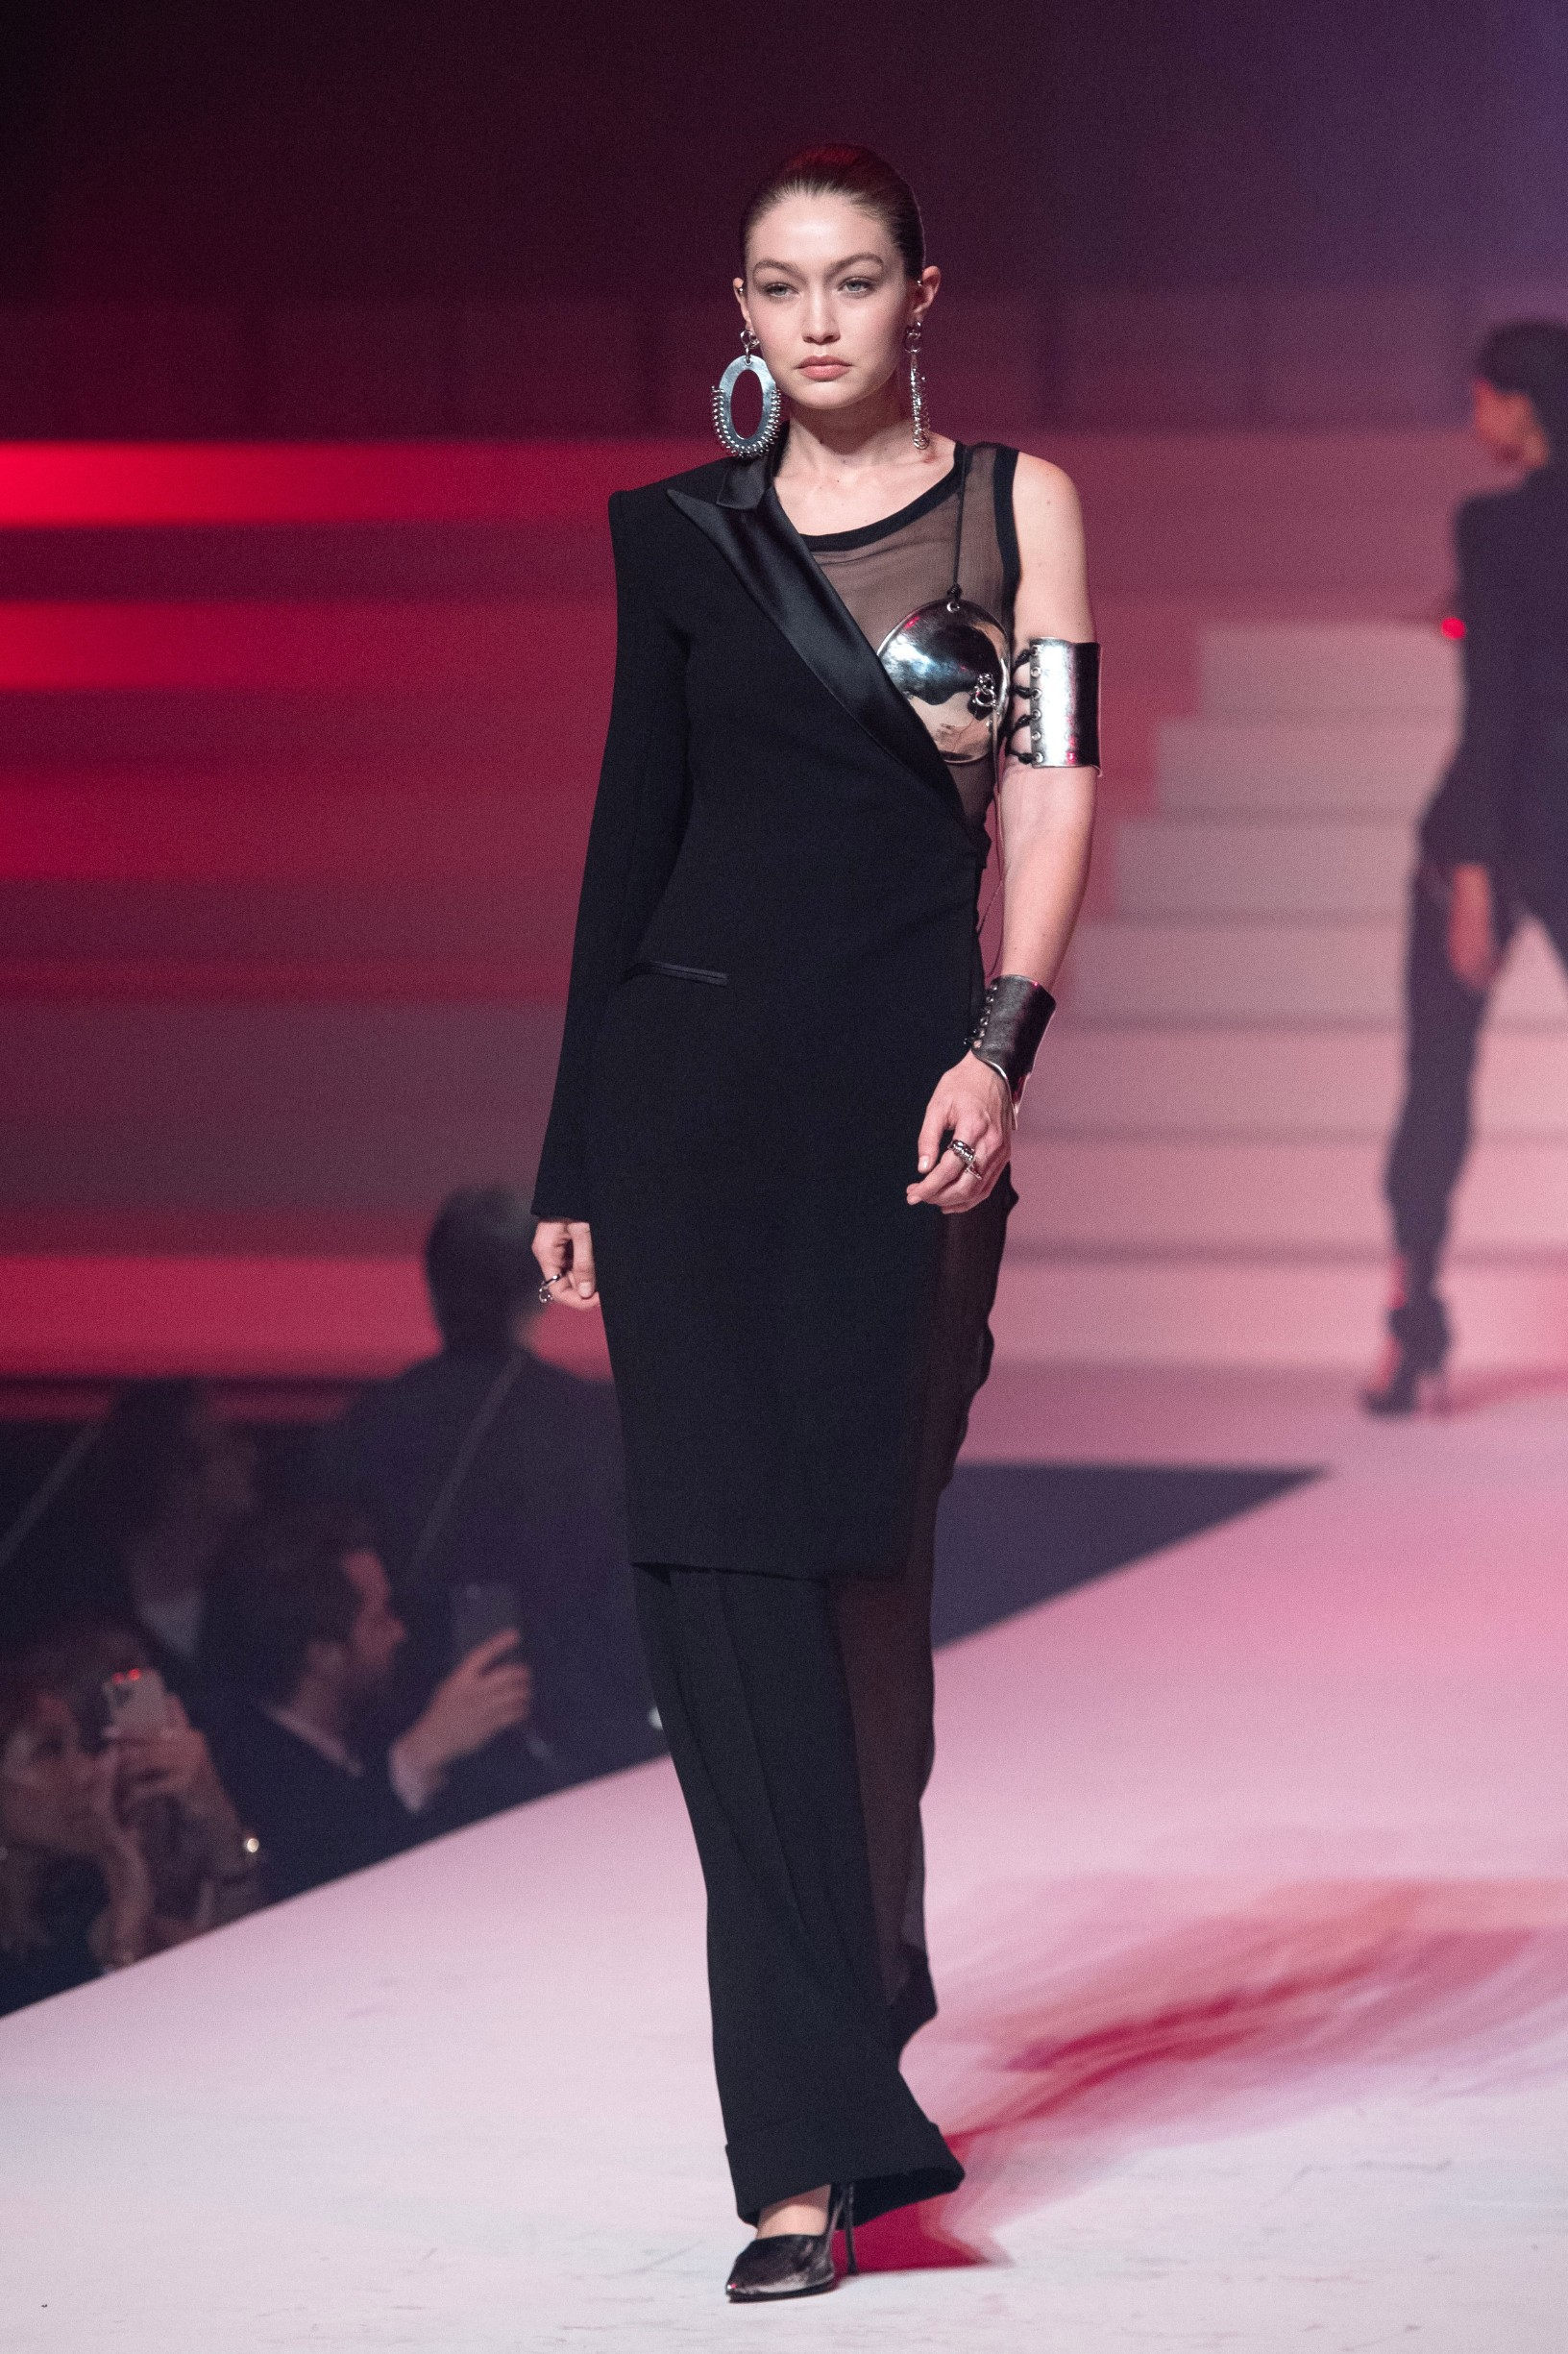 Gigi Hadid walks the runway during the last Jean-Paul Gaultier Haute Couture Spring/Summer 2020 show as part of Paris Fashion Week in Paris, France on January 22, 2020., Image: 494341939, License: Rights-managed, Restrictions: , Model Release: no, Credit line: Marechal Aurore/ABACA / Abaca Press / Profimedia